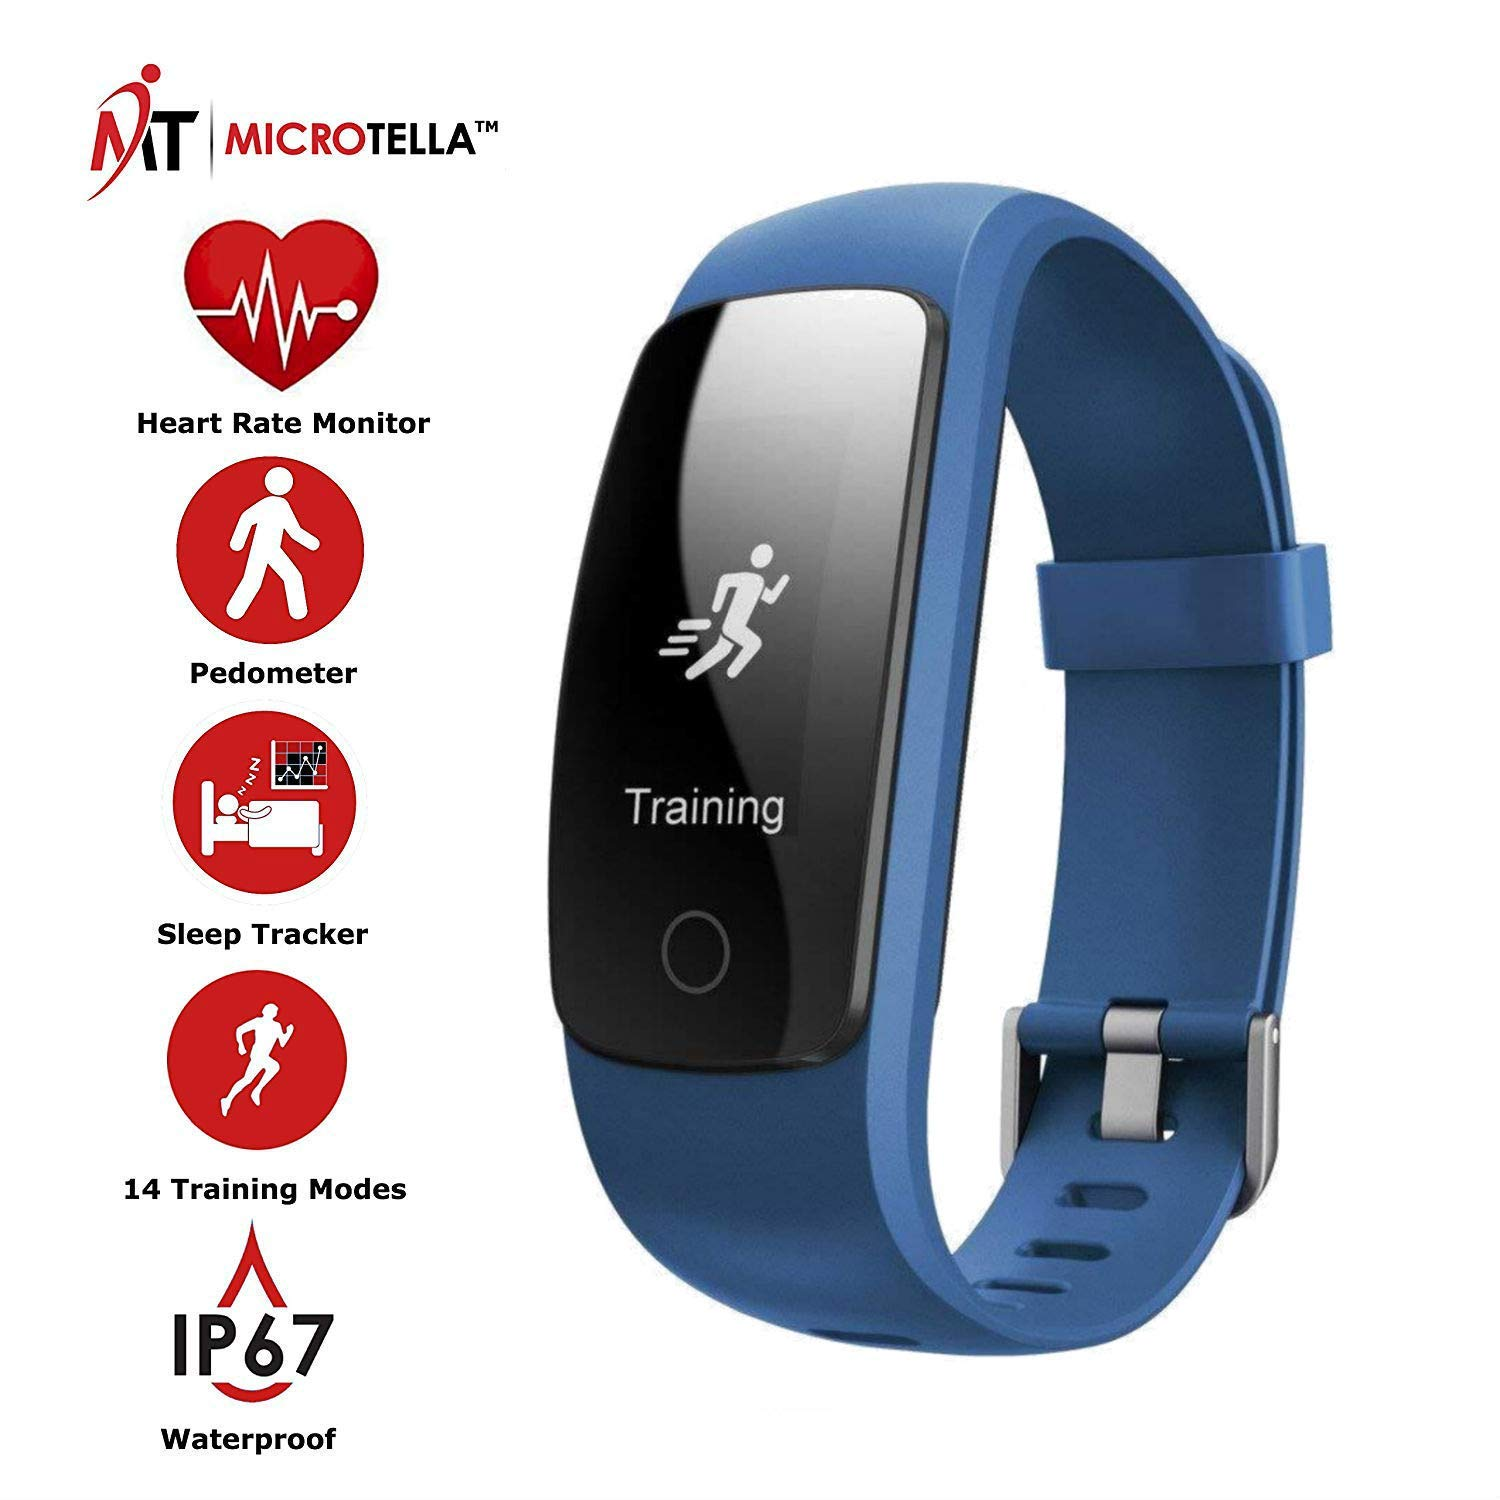 Mictrotella Fitness Tracker